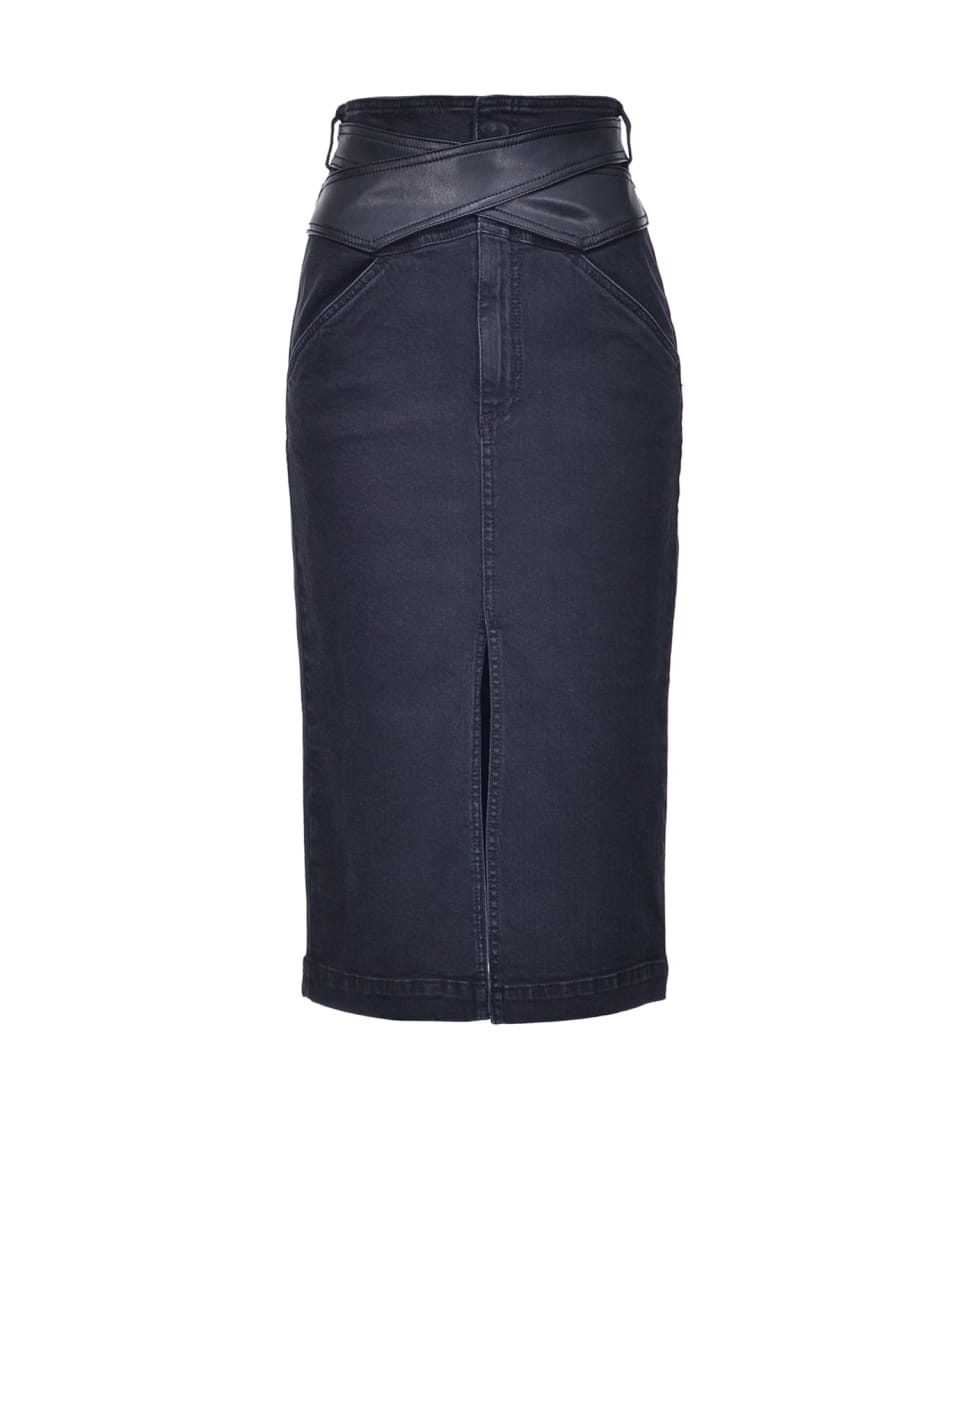 Midi-length denim skirt with leather-look belt - Pinko